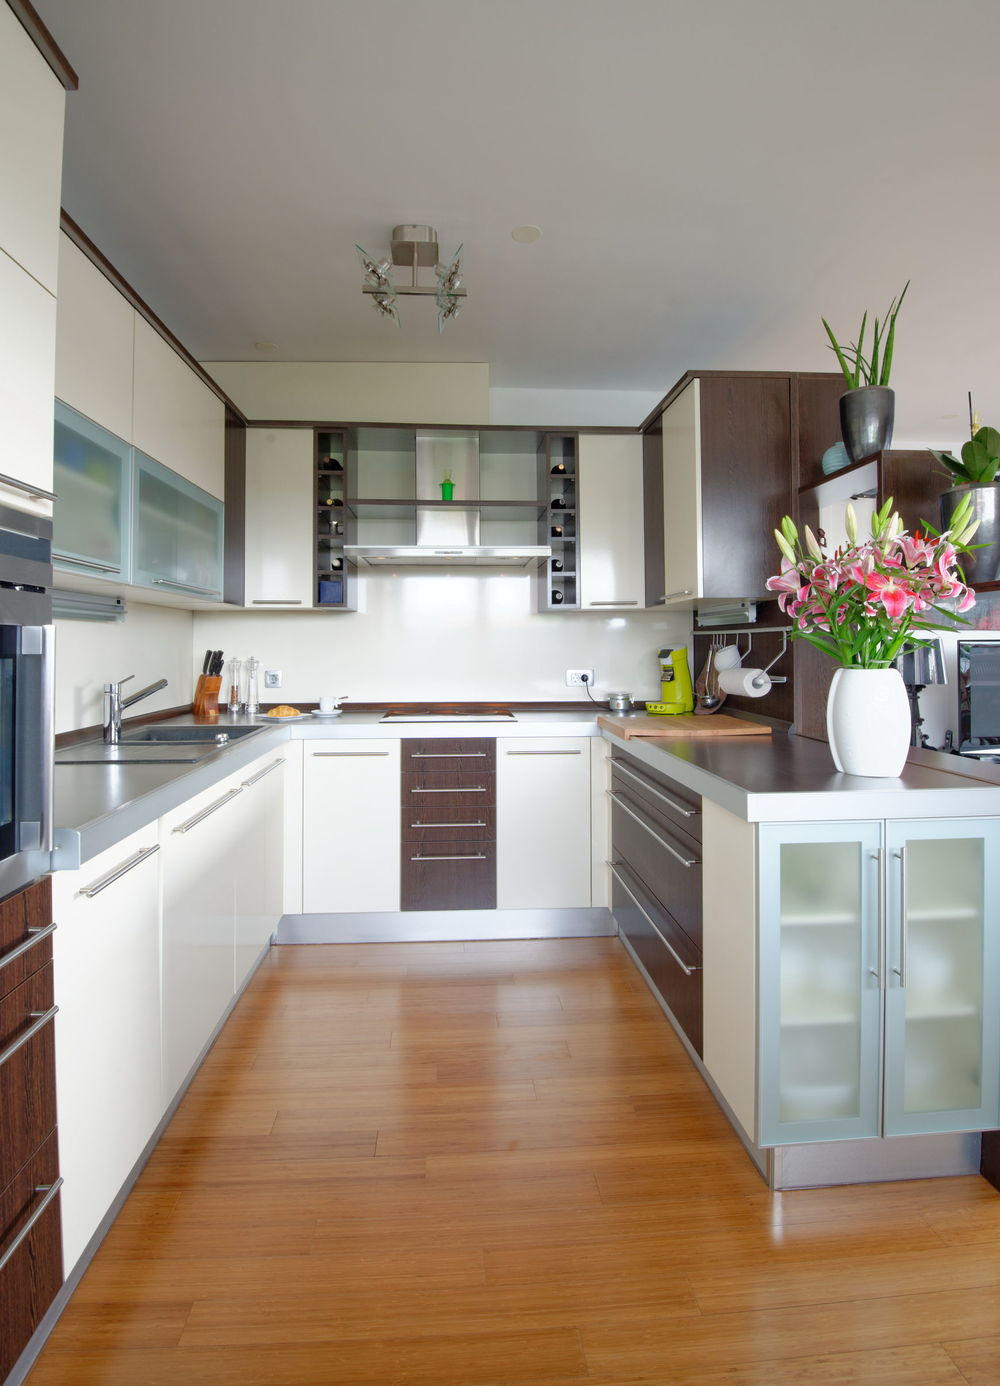 1oak_kitchen06.jpg